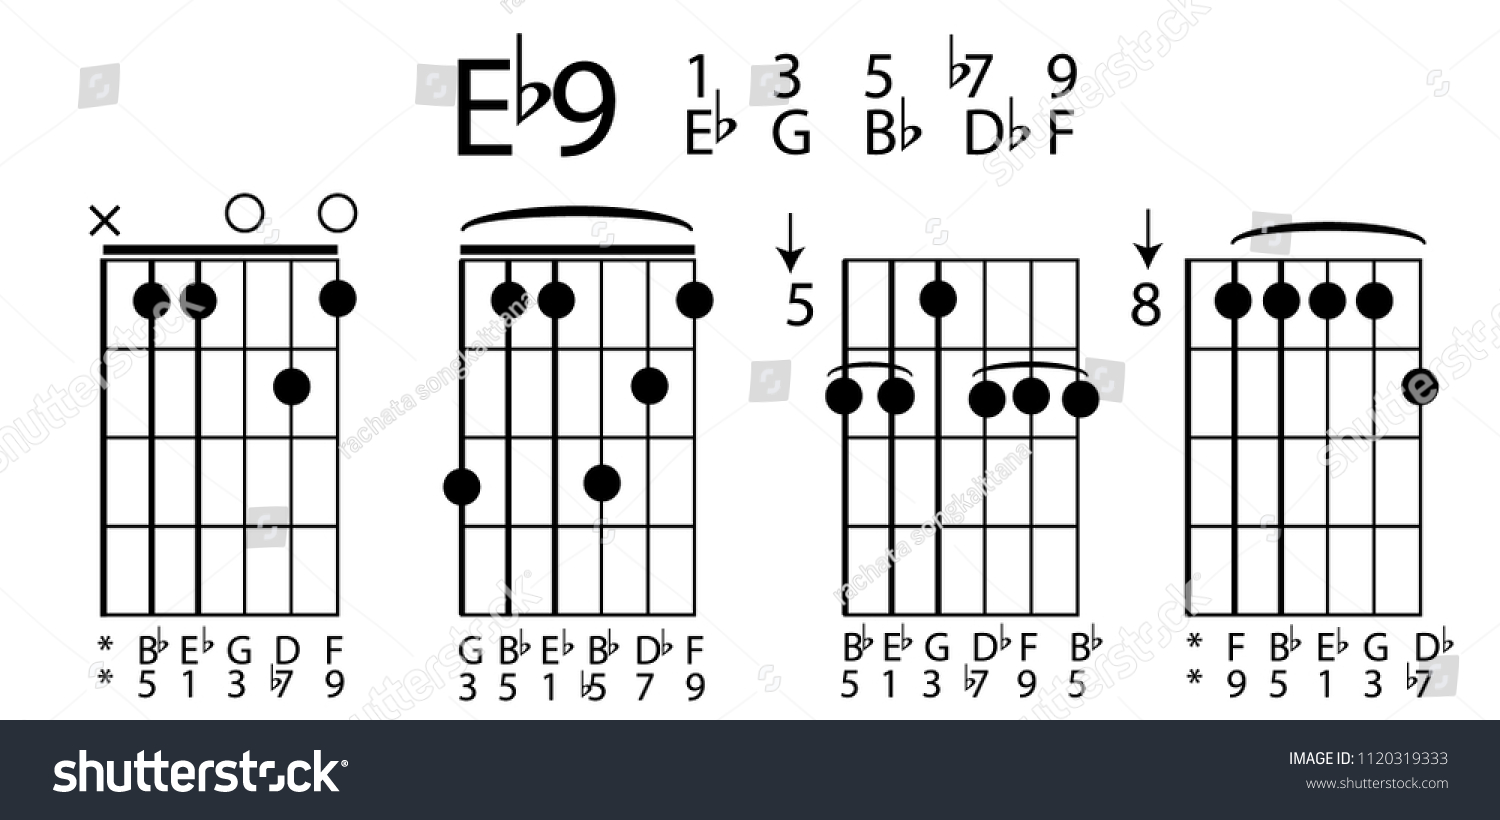 B5 Chord Guitar Gallery Piano Chord Chart With Finger Positions